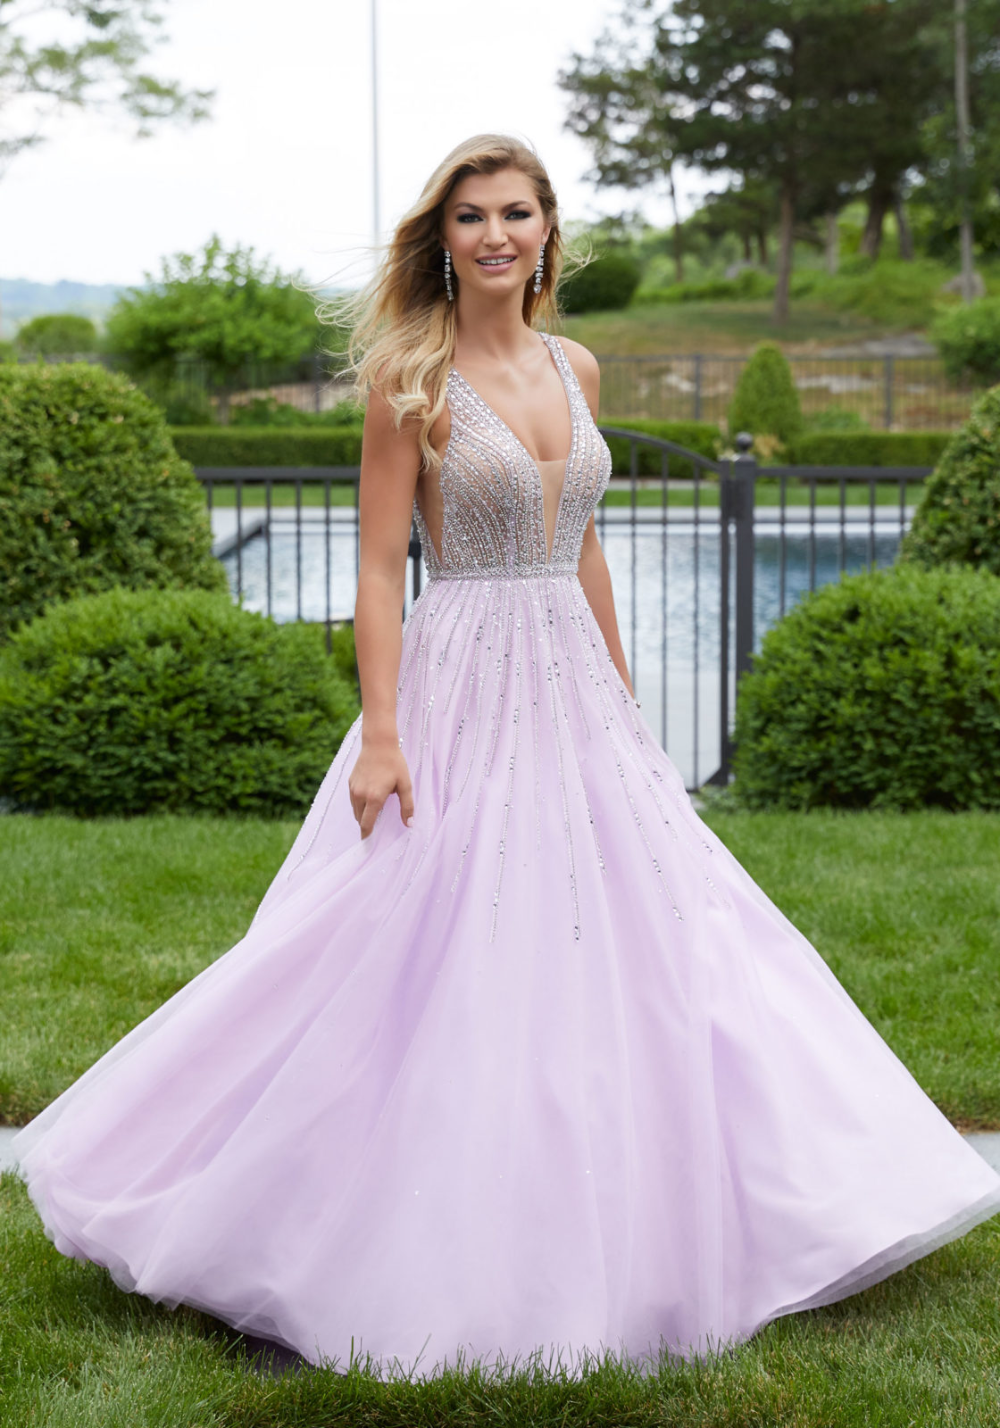 Lilac Prom Dresses,Tulle Prom Dress for Teens,Elegant Prom